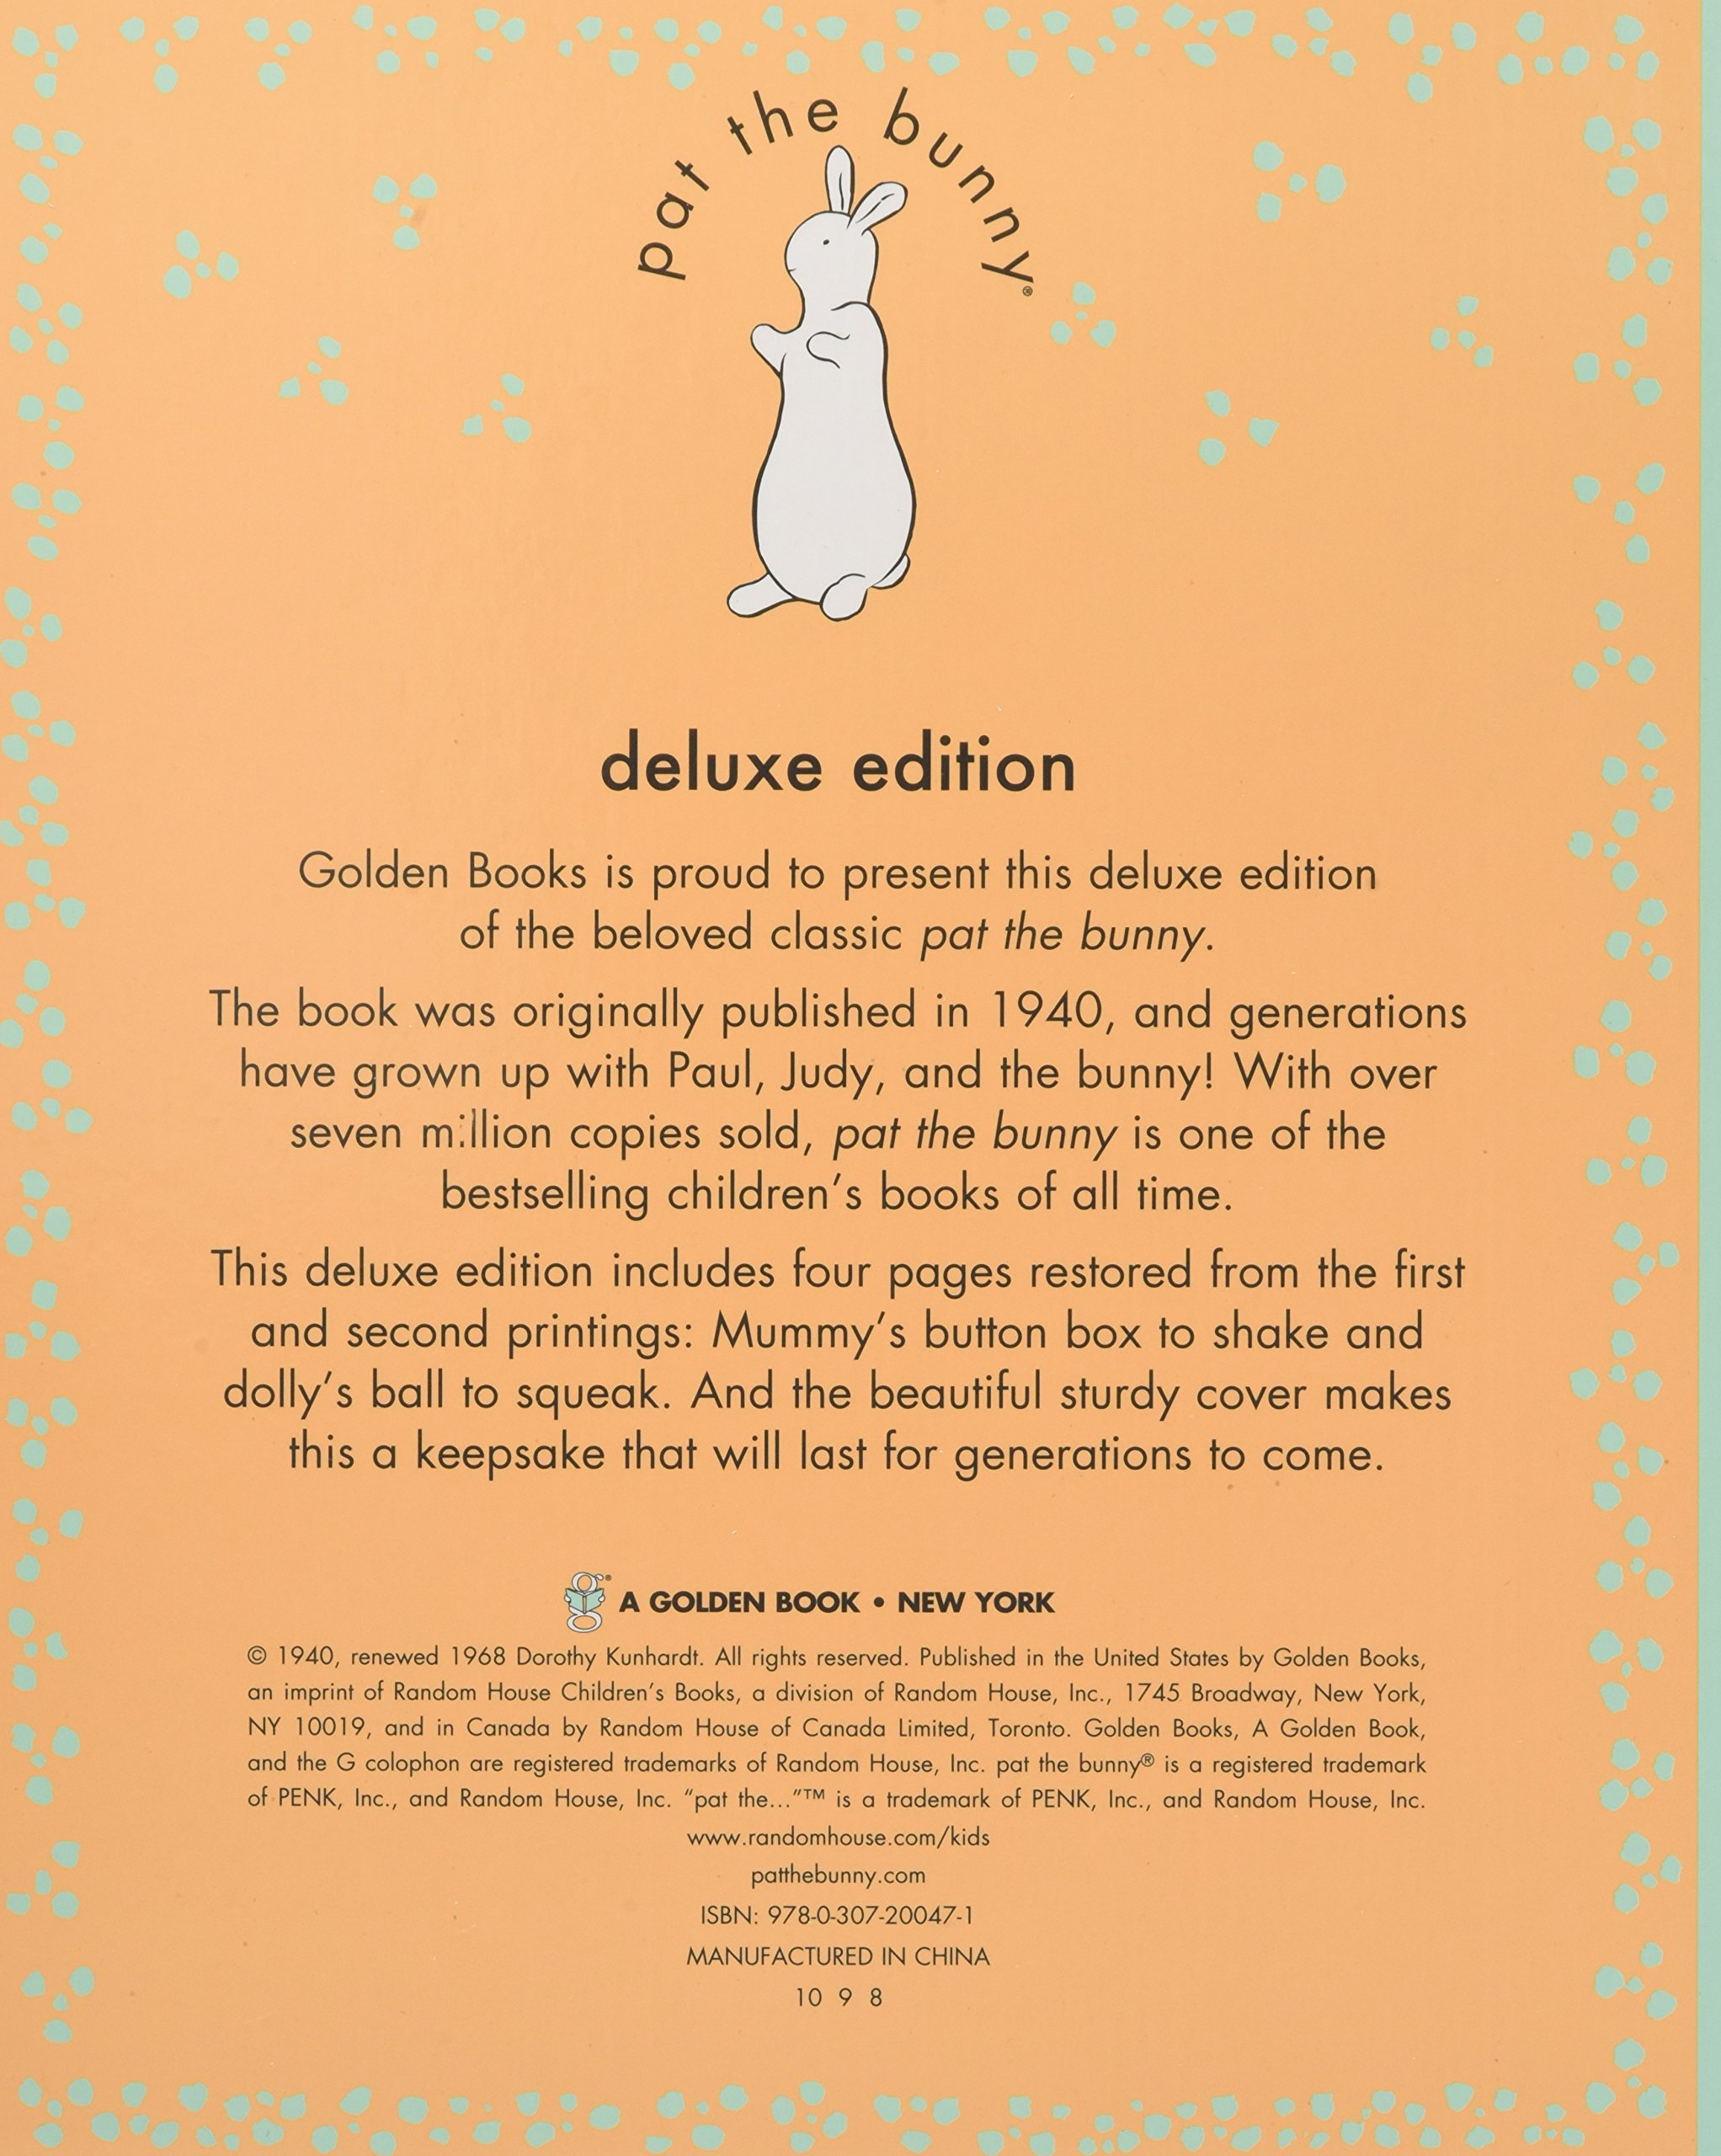 Pat the Bunny Deluxe Edition by Golden Books (Image #3)